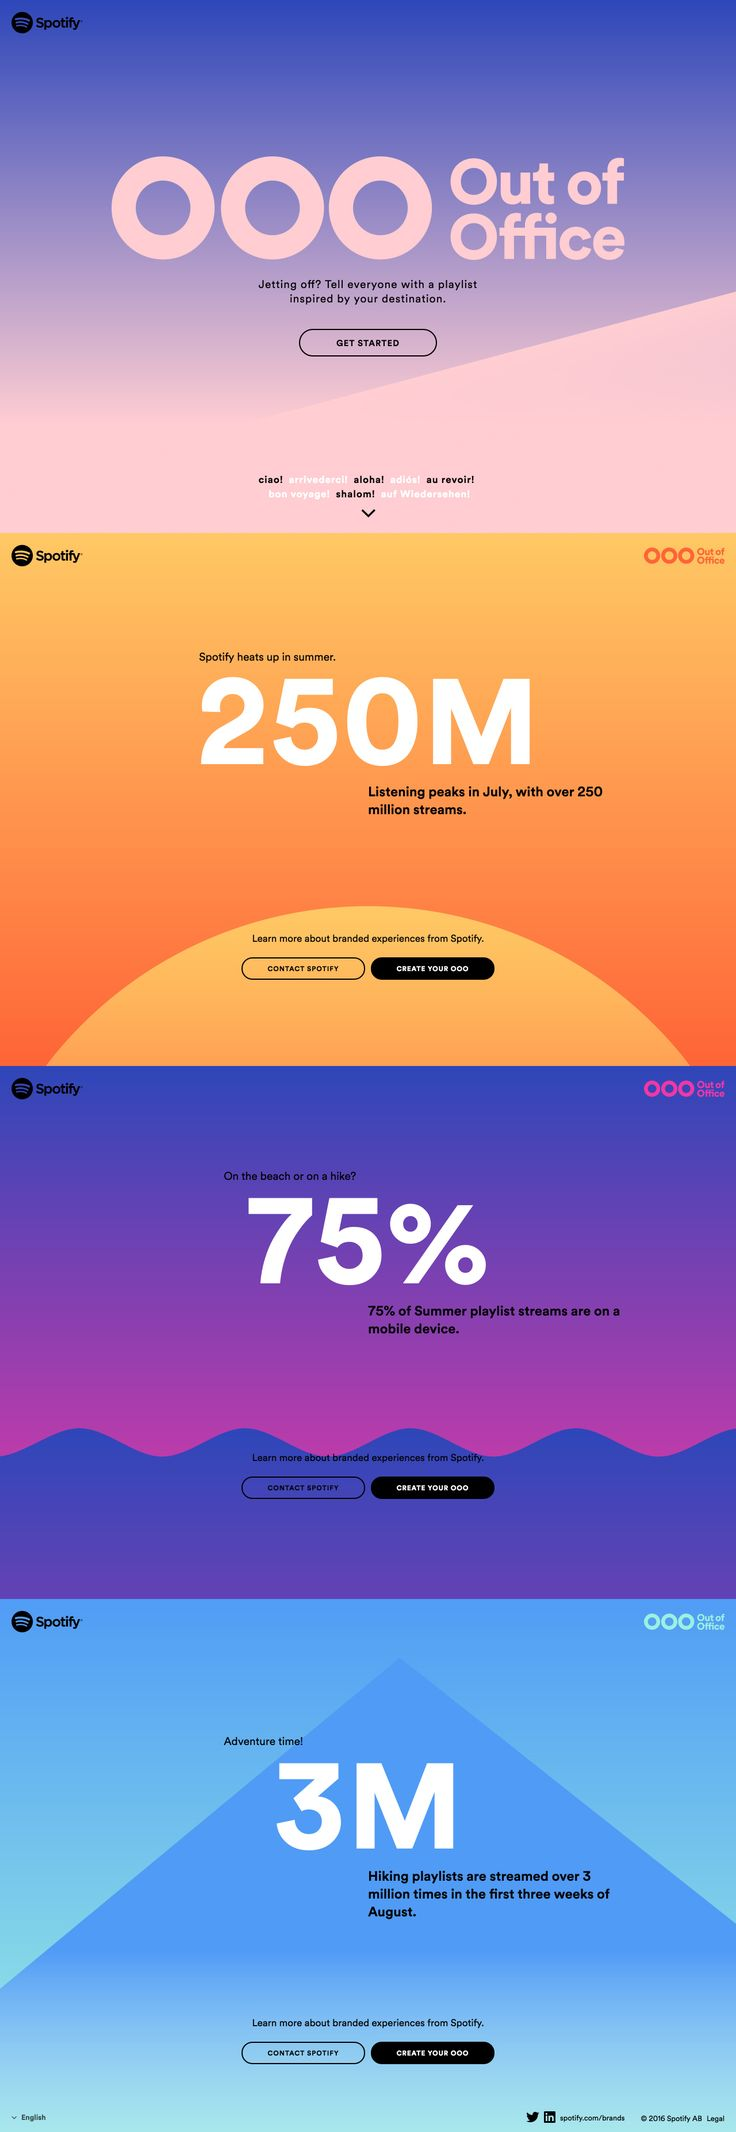 """Colorful One Pager with gradients that change as you scroll promoting Spotify's fun """"out of office"""" playlist generator."""